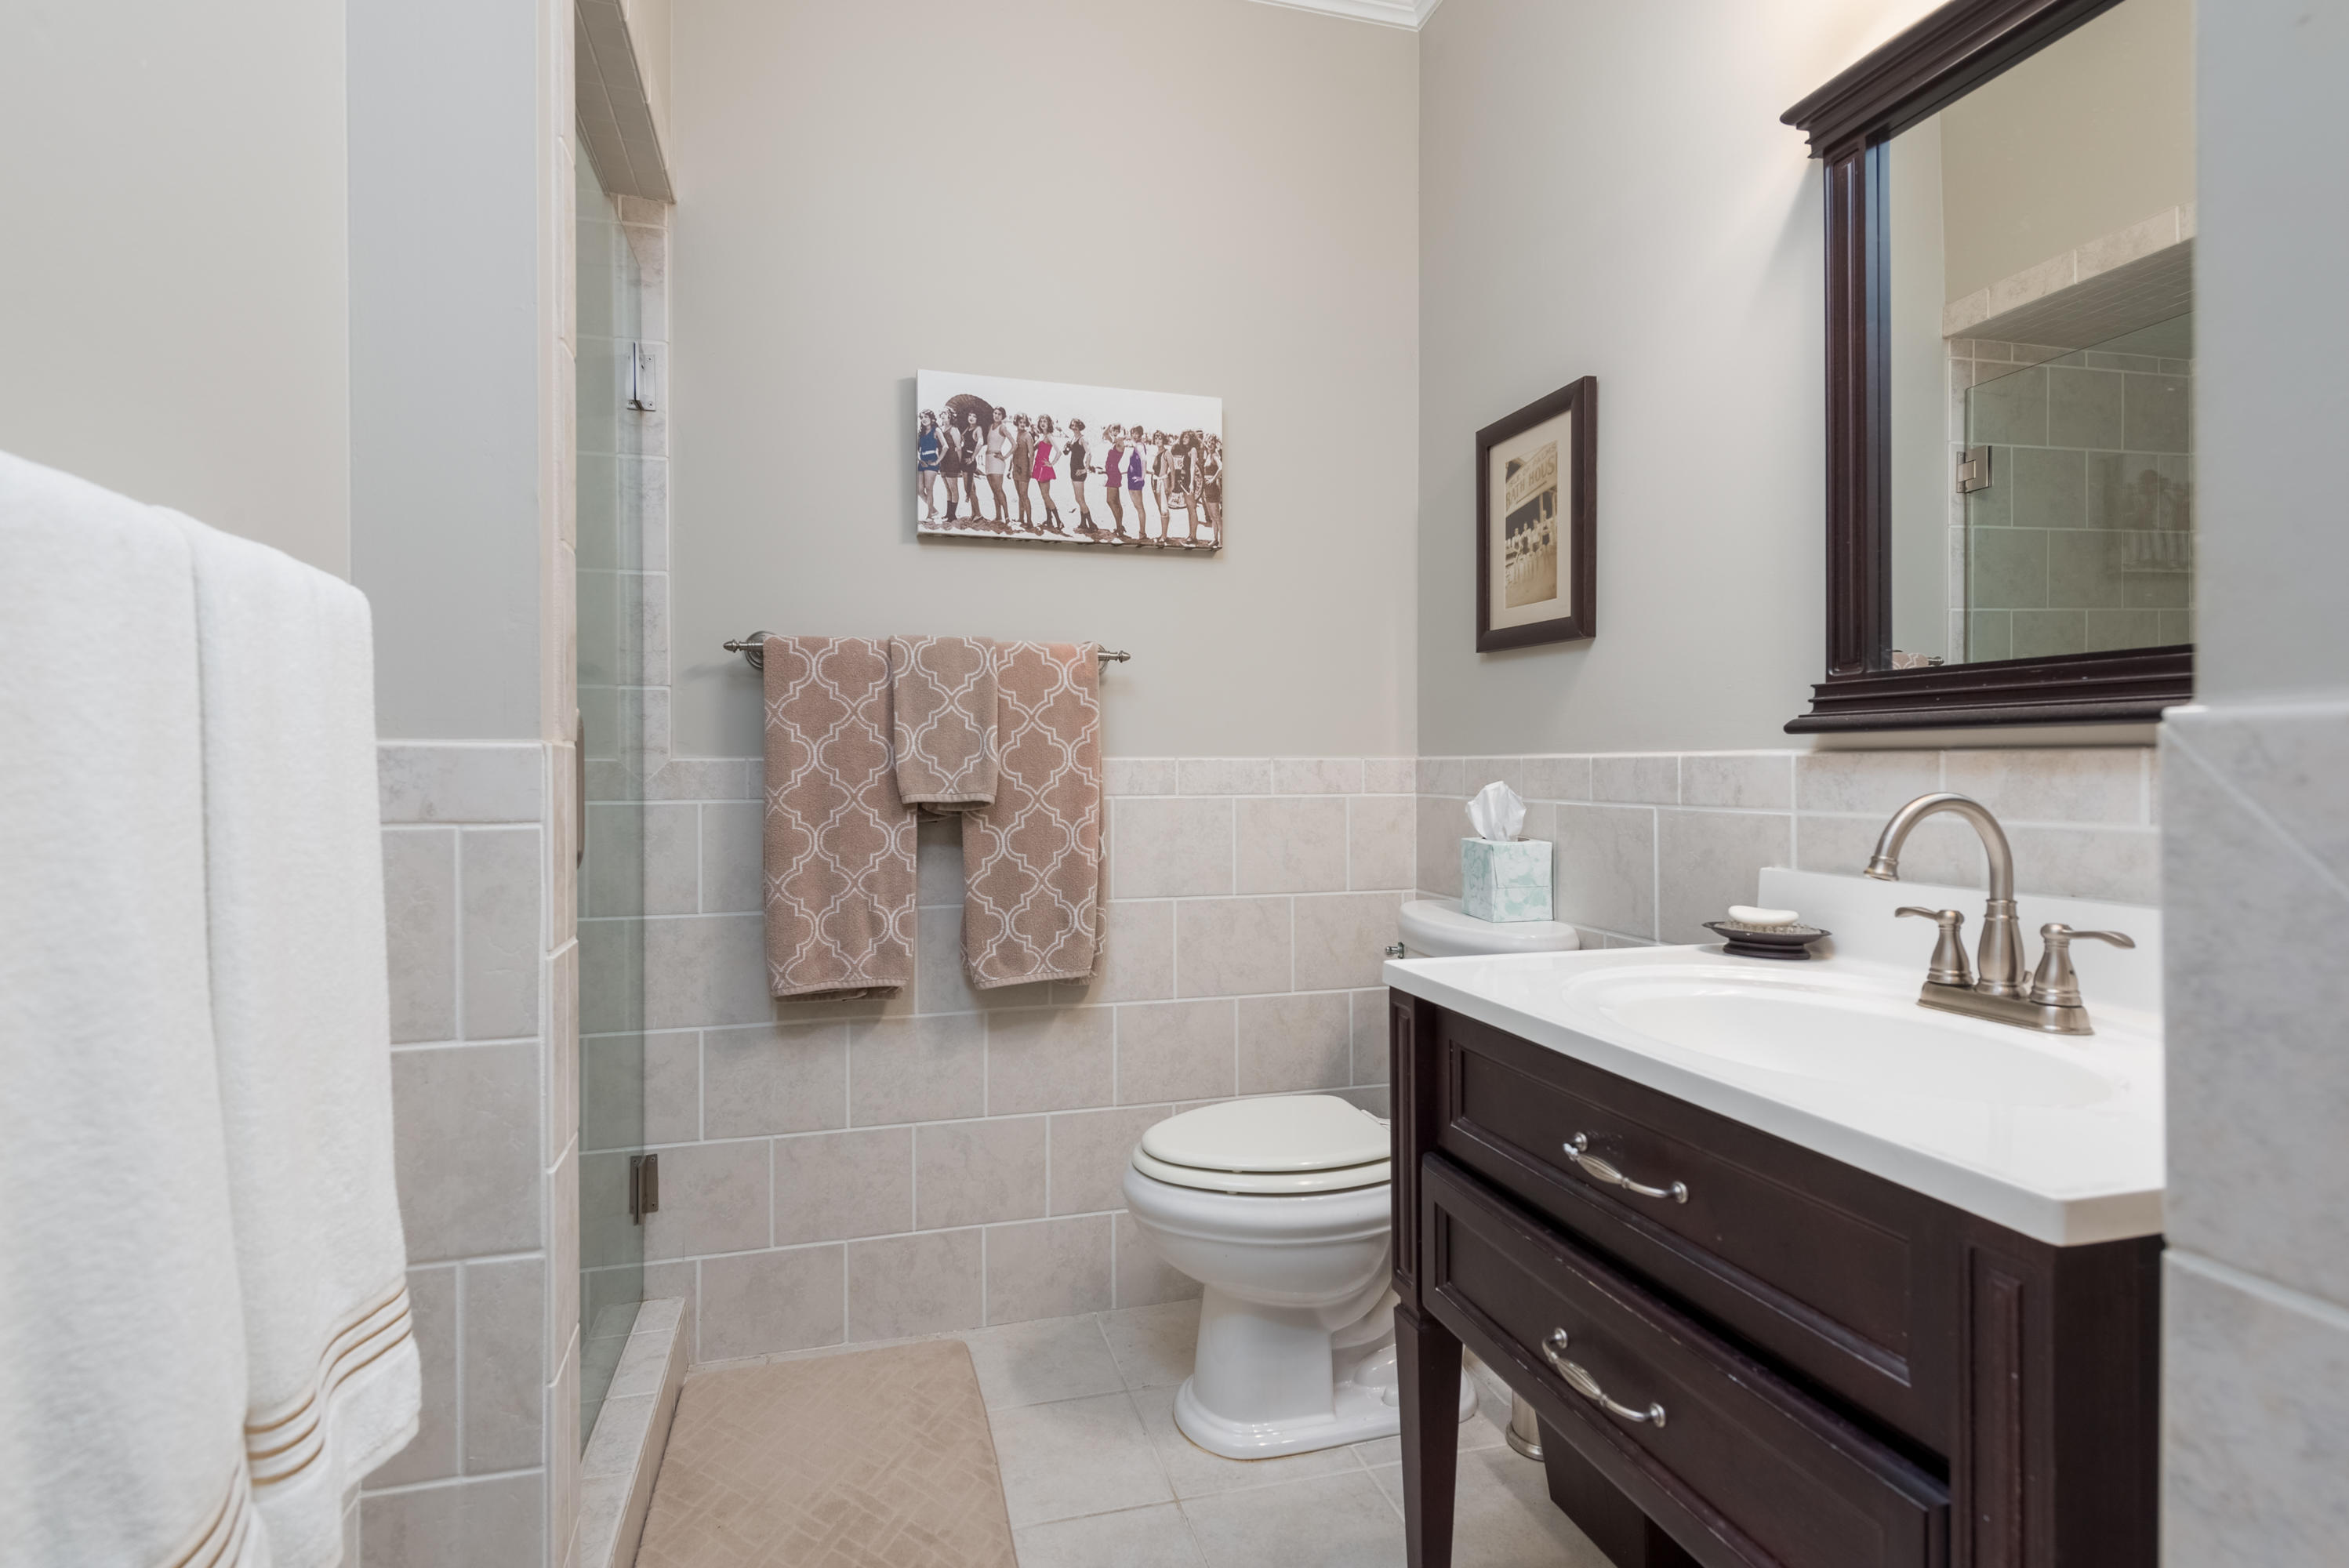 Simmons Pointe Homes For Sale - 1551 Simmons, Mount Pleasant, SC - 16